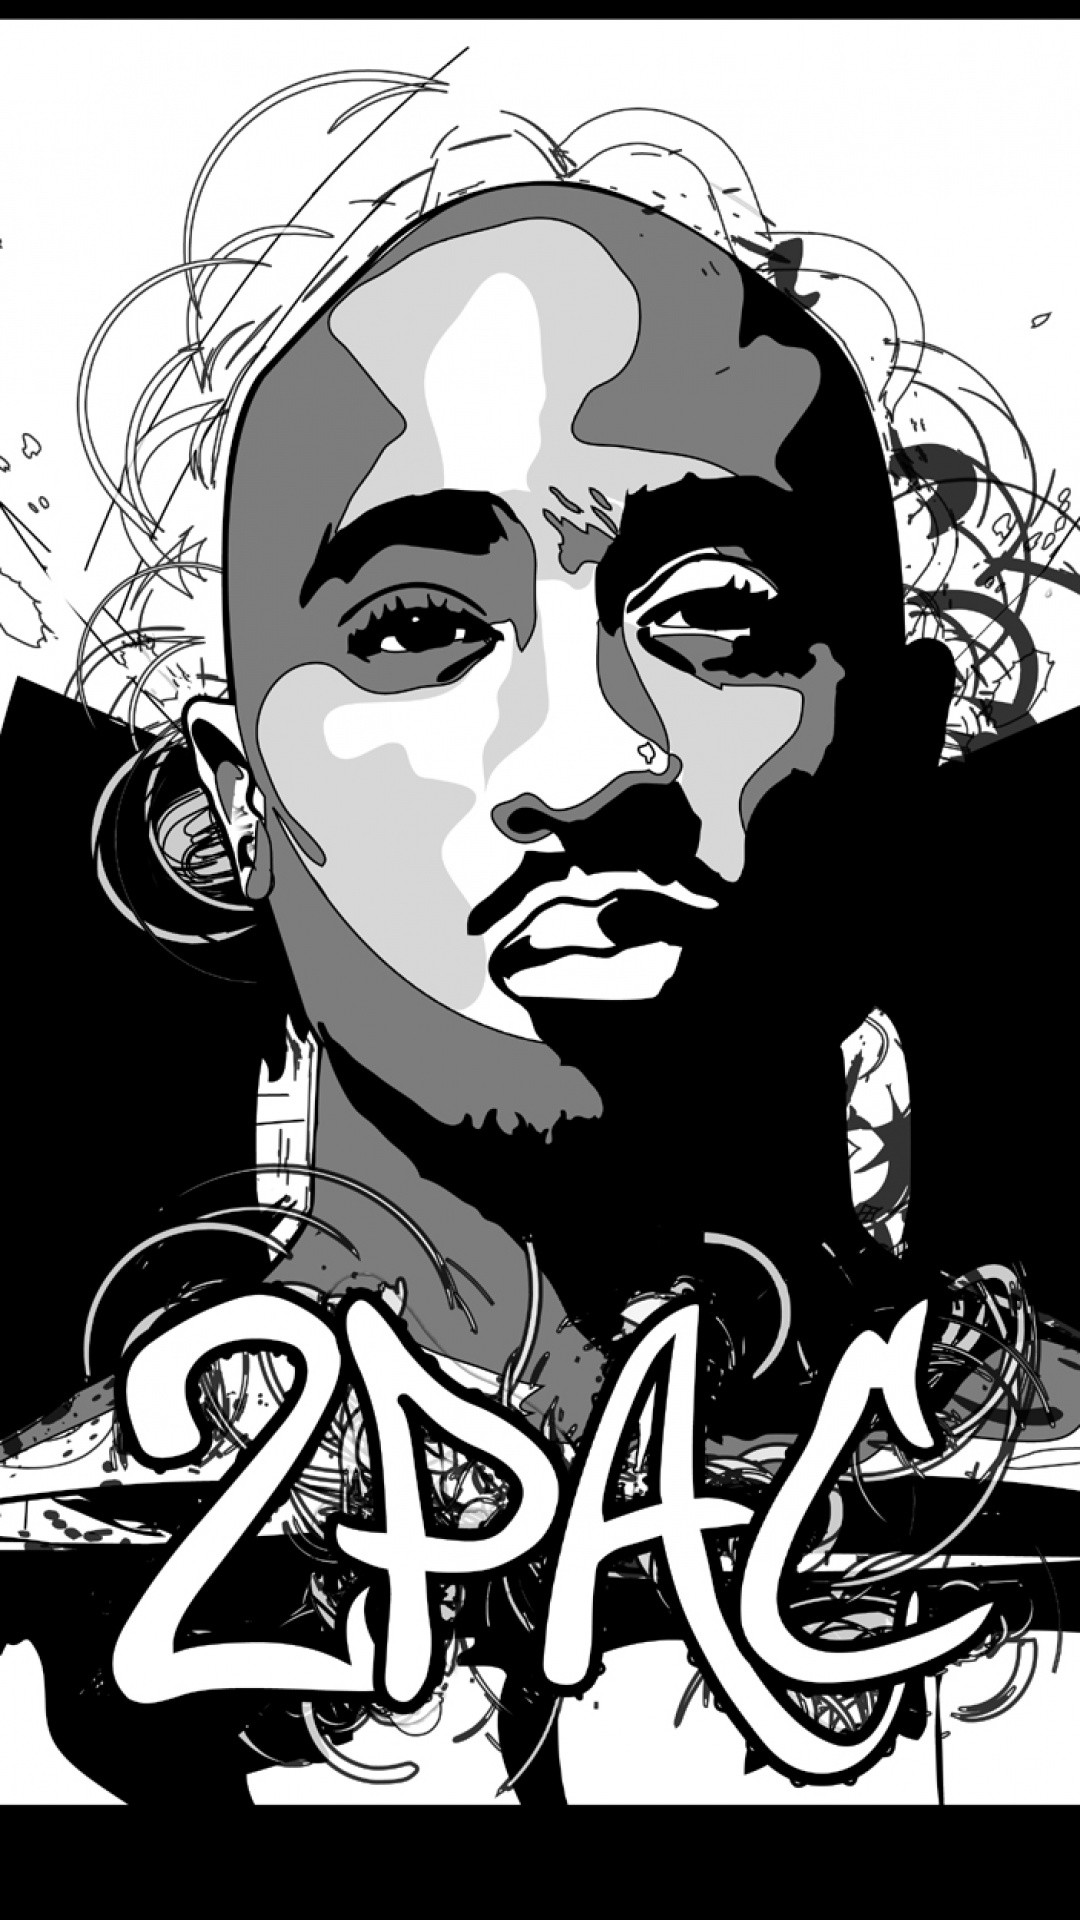 1080x1920 2Pac Download Wallpaper For IPhone